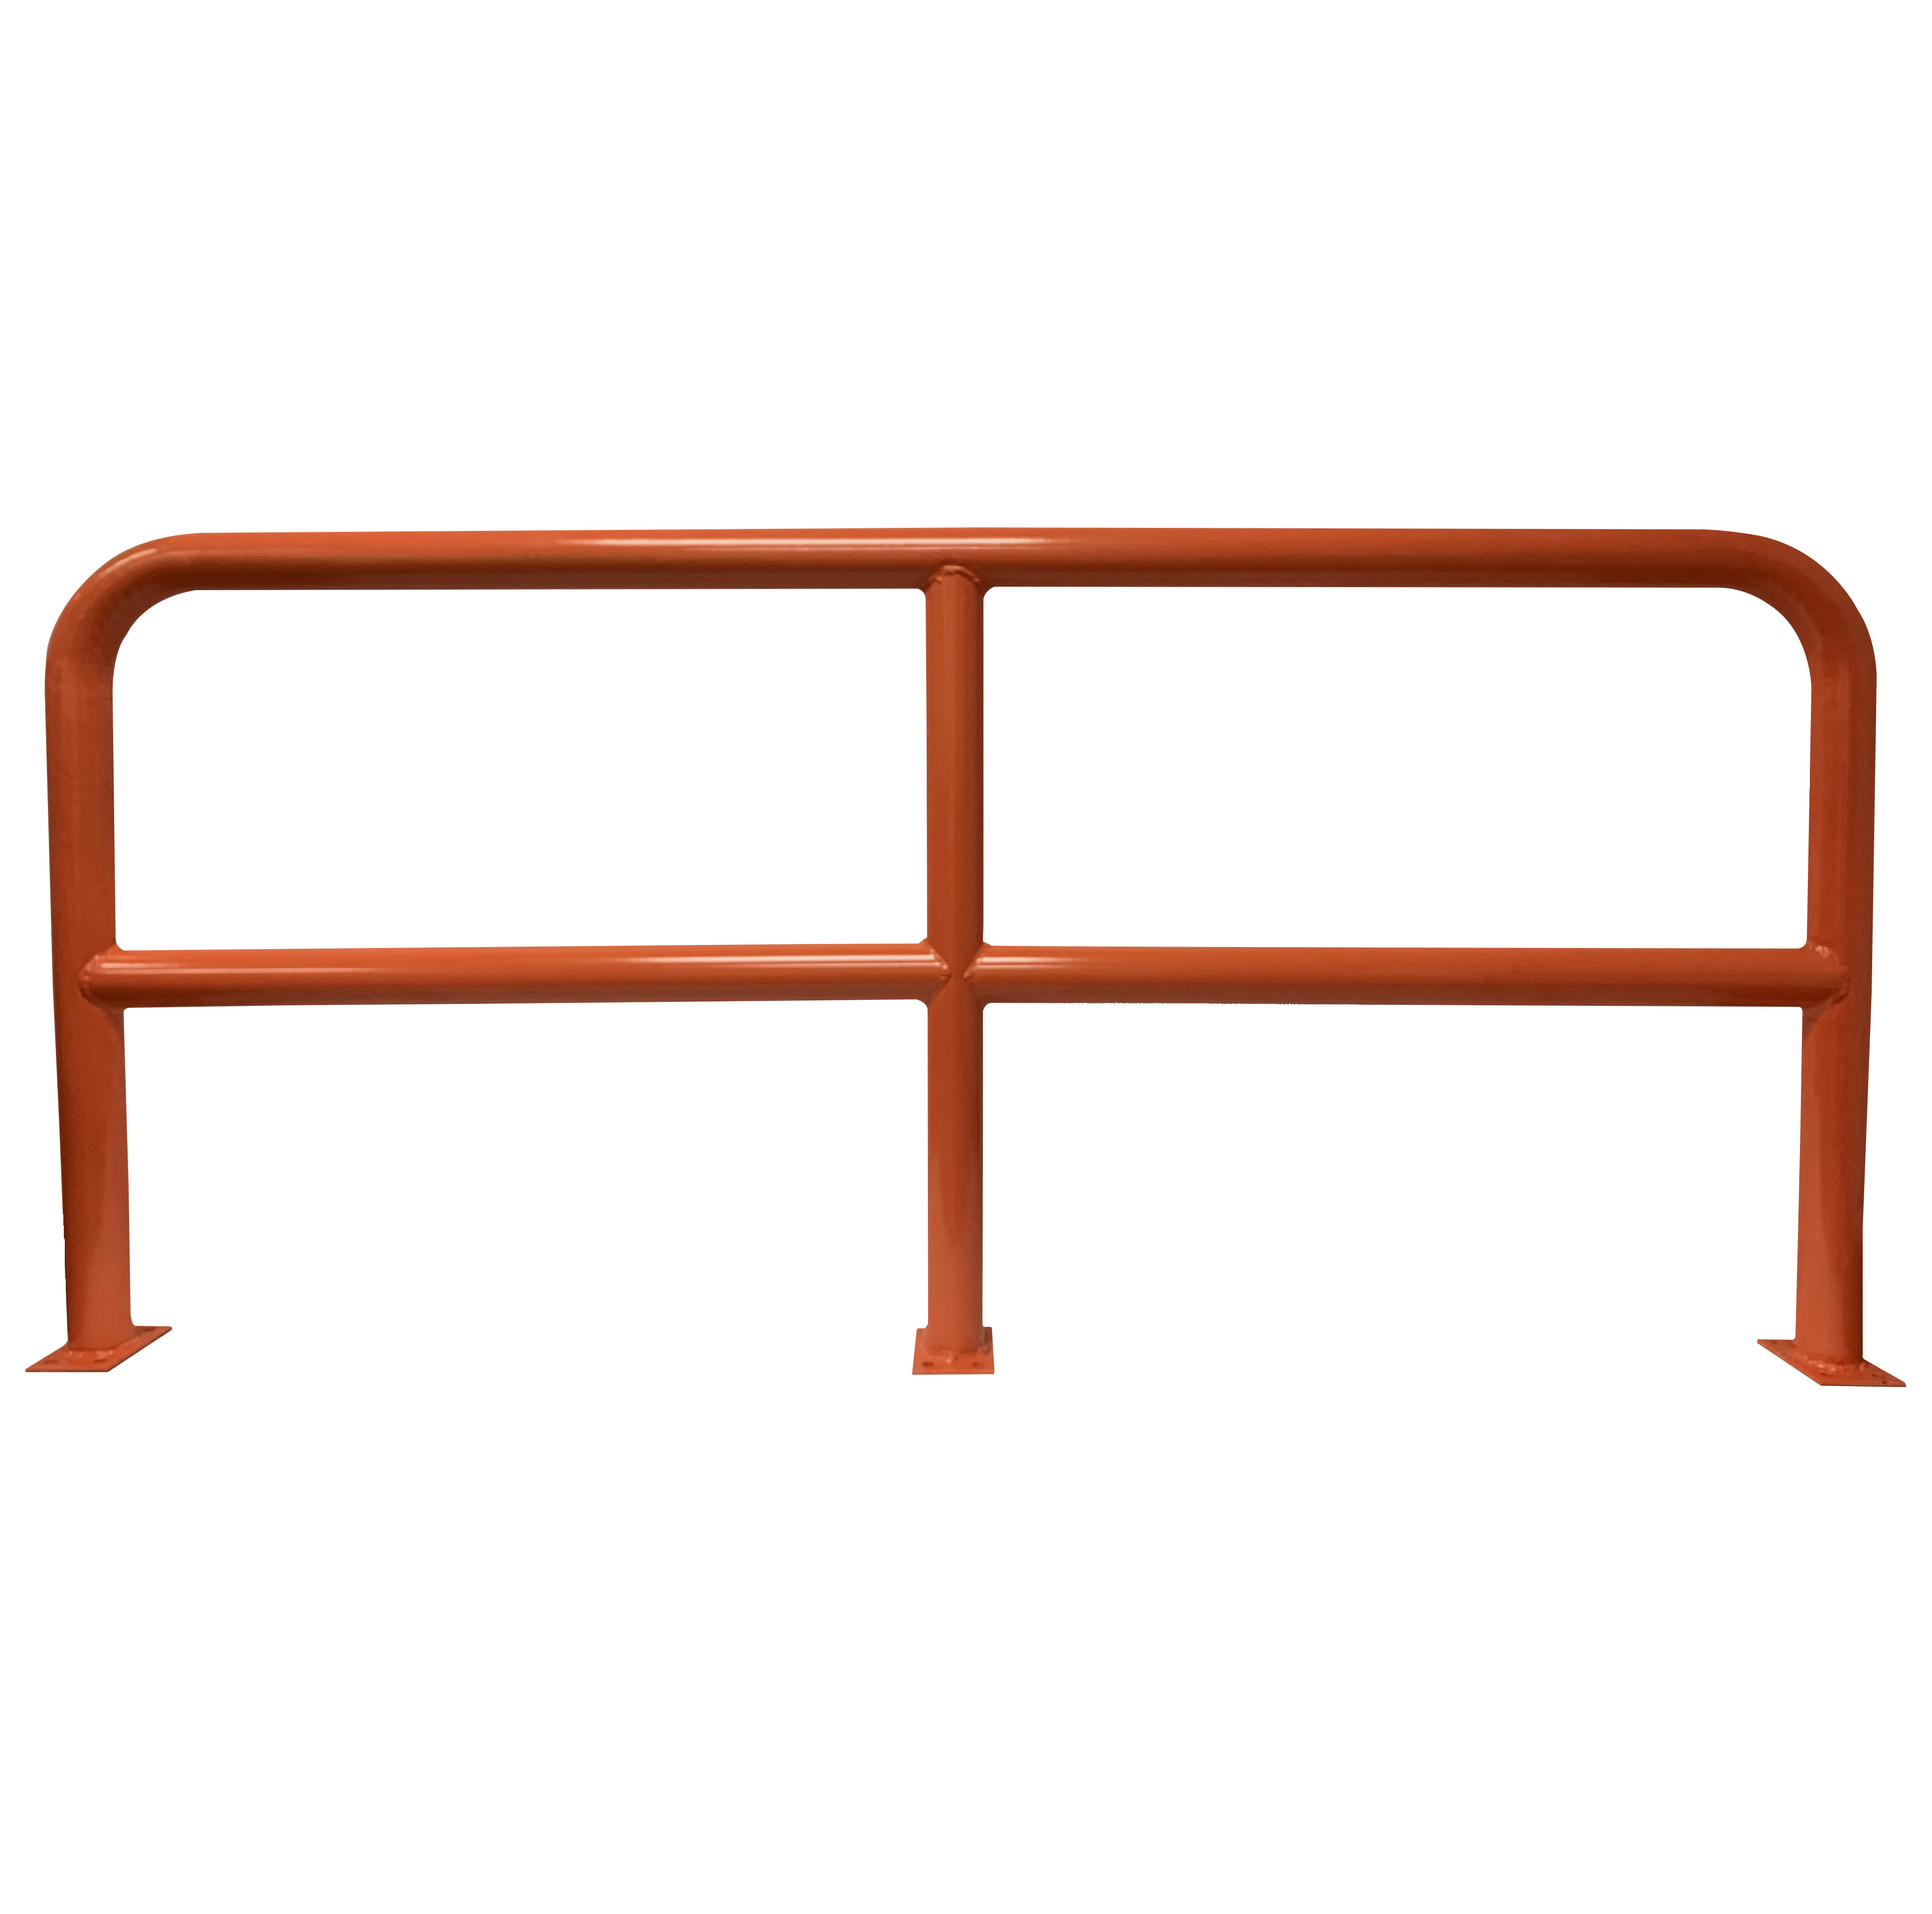 Barrier Protector - 1000mm High x 2200mm Wide - 76mm Tube Orange